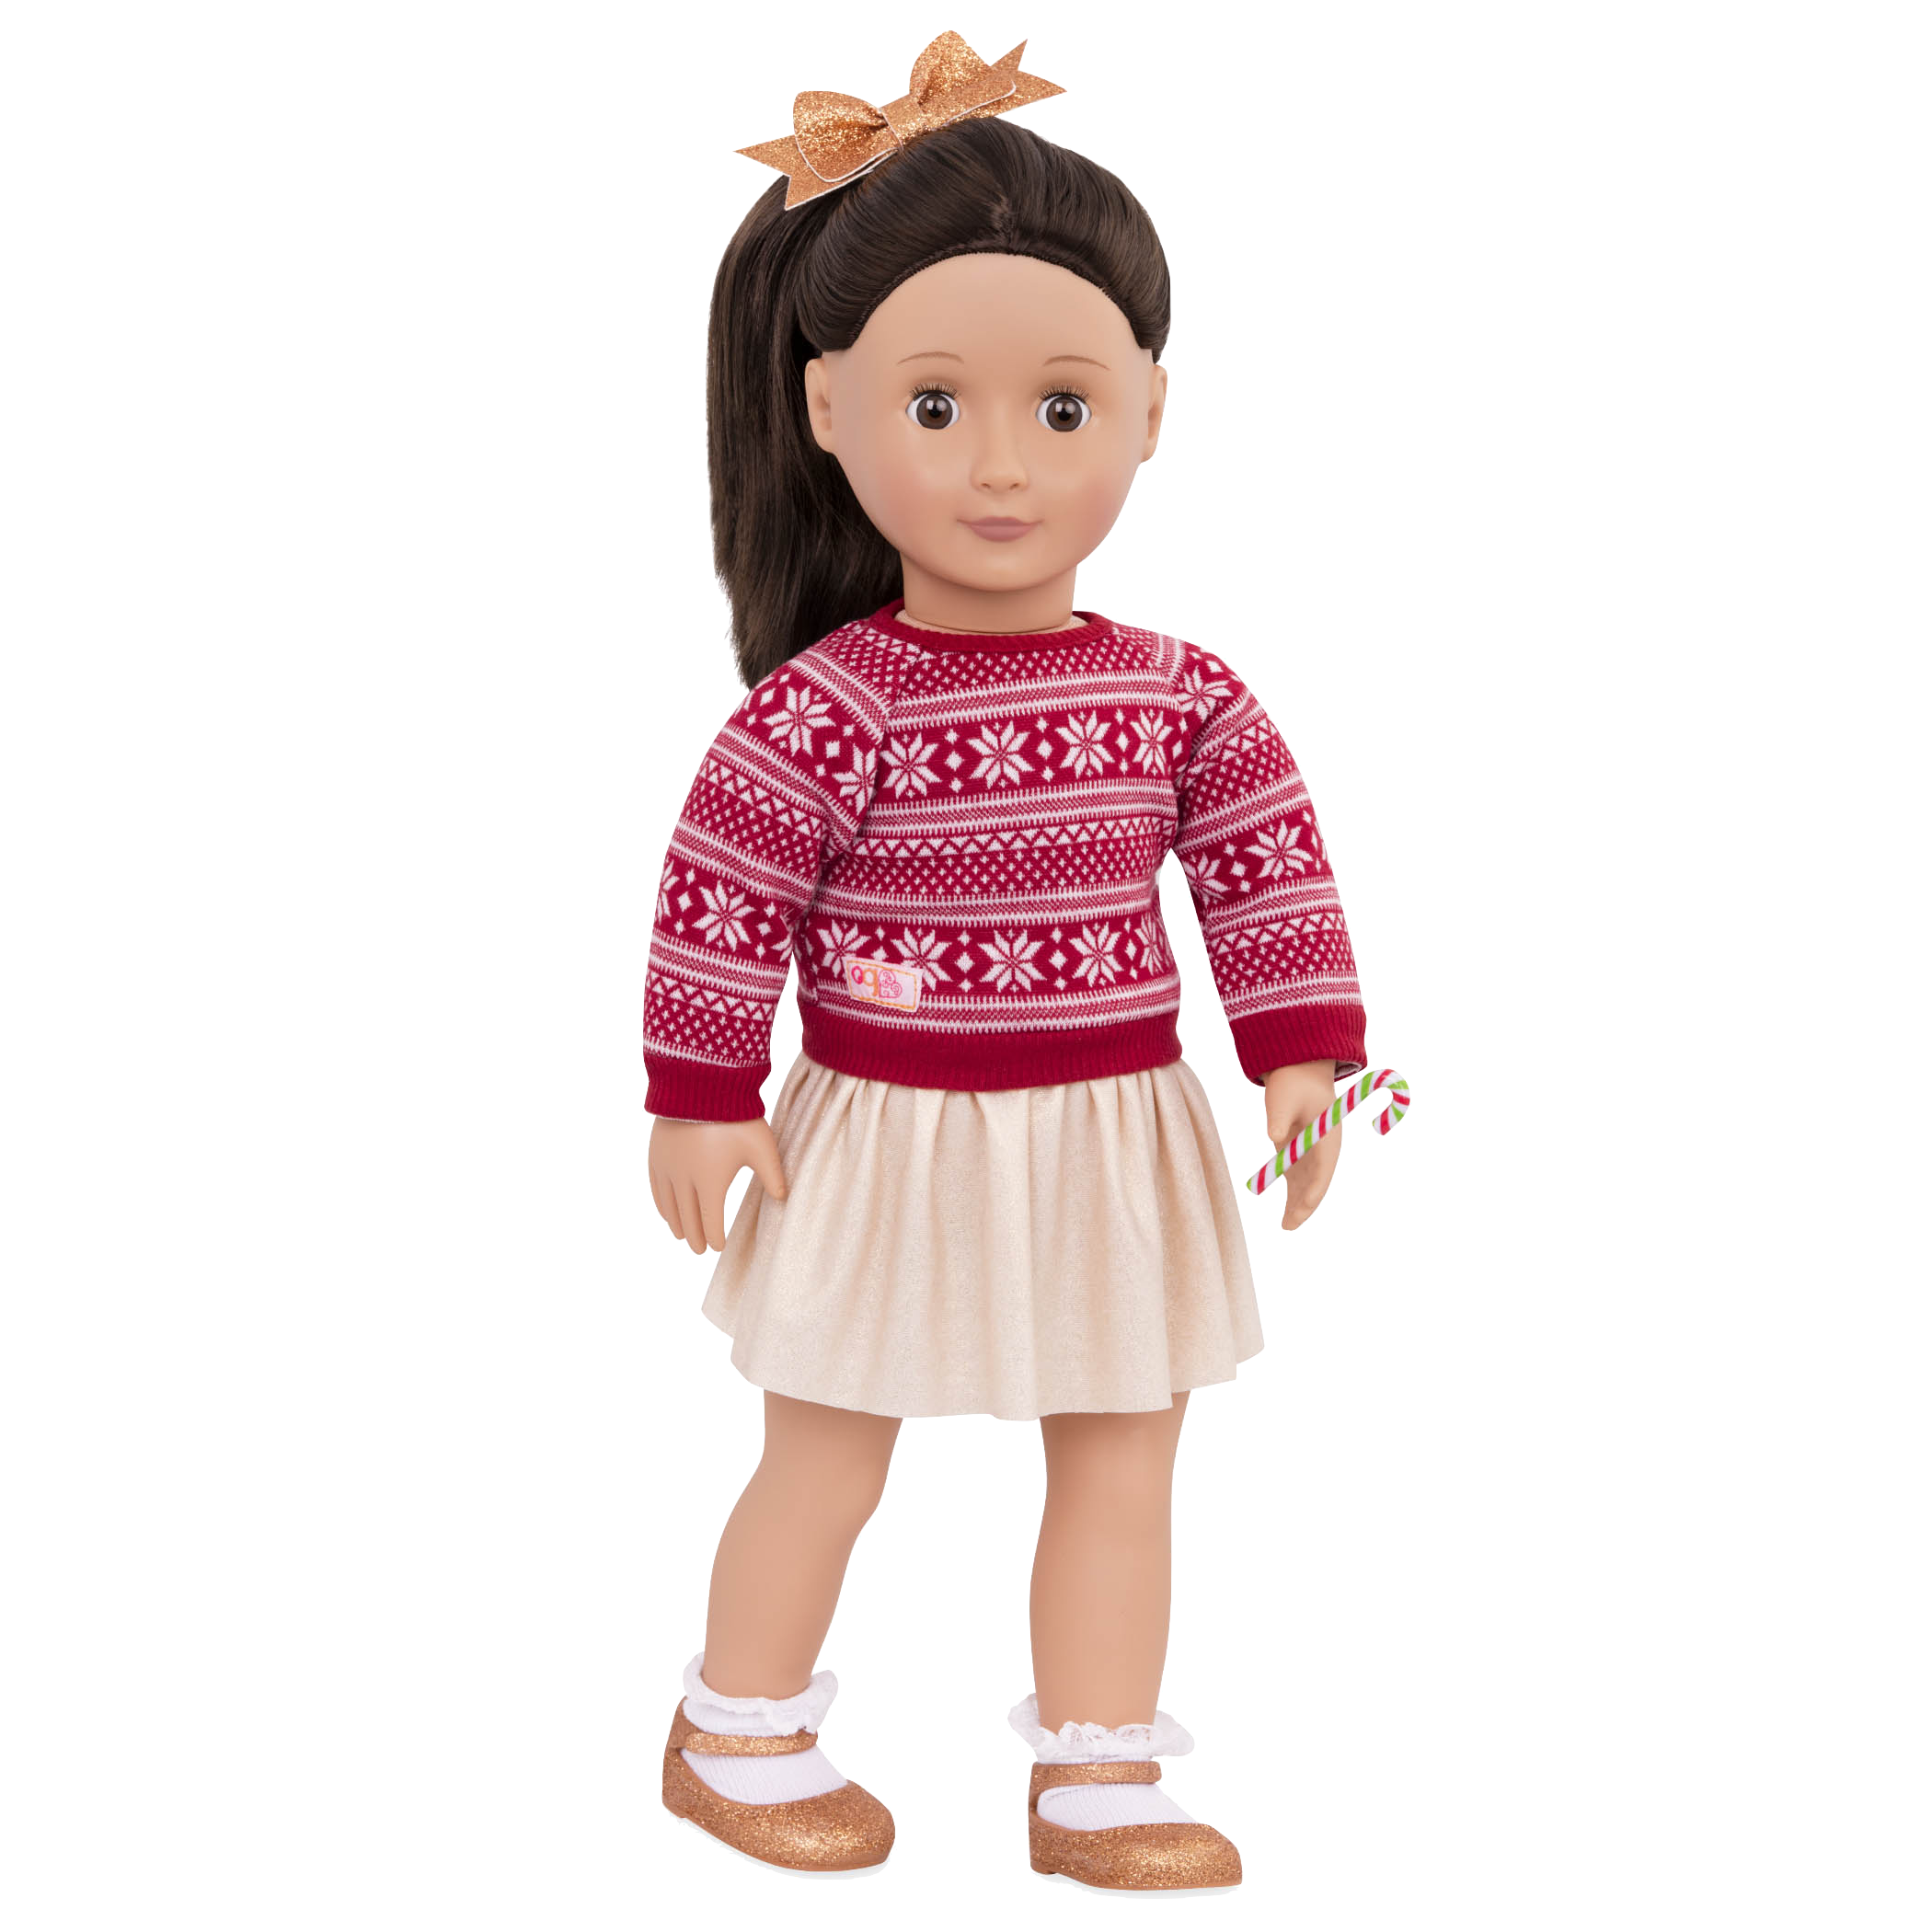 Sweet Holiday outfit Kaihily doll wearing